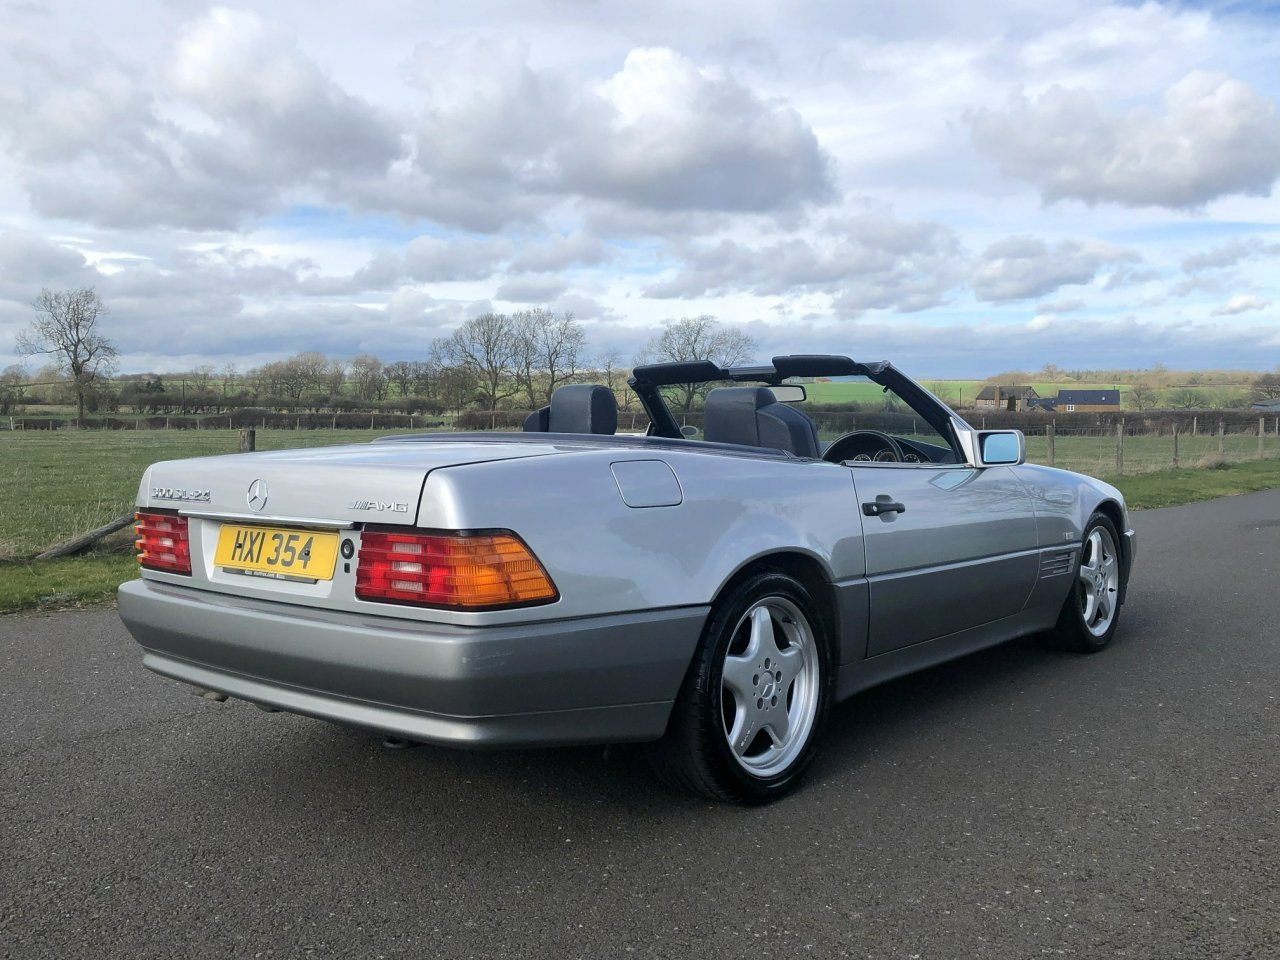 1990 Mercedes Benz 300 SL-24V R129 Automatic For Sale (picture 3 of 6)